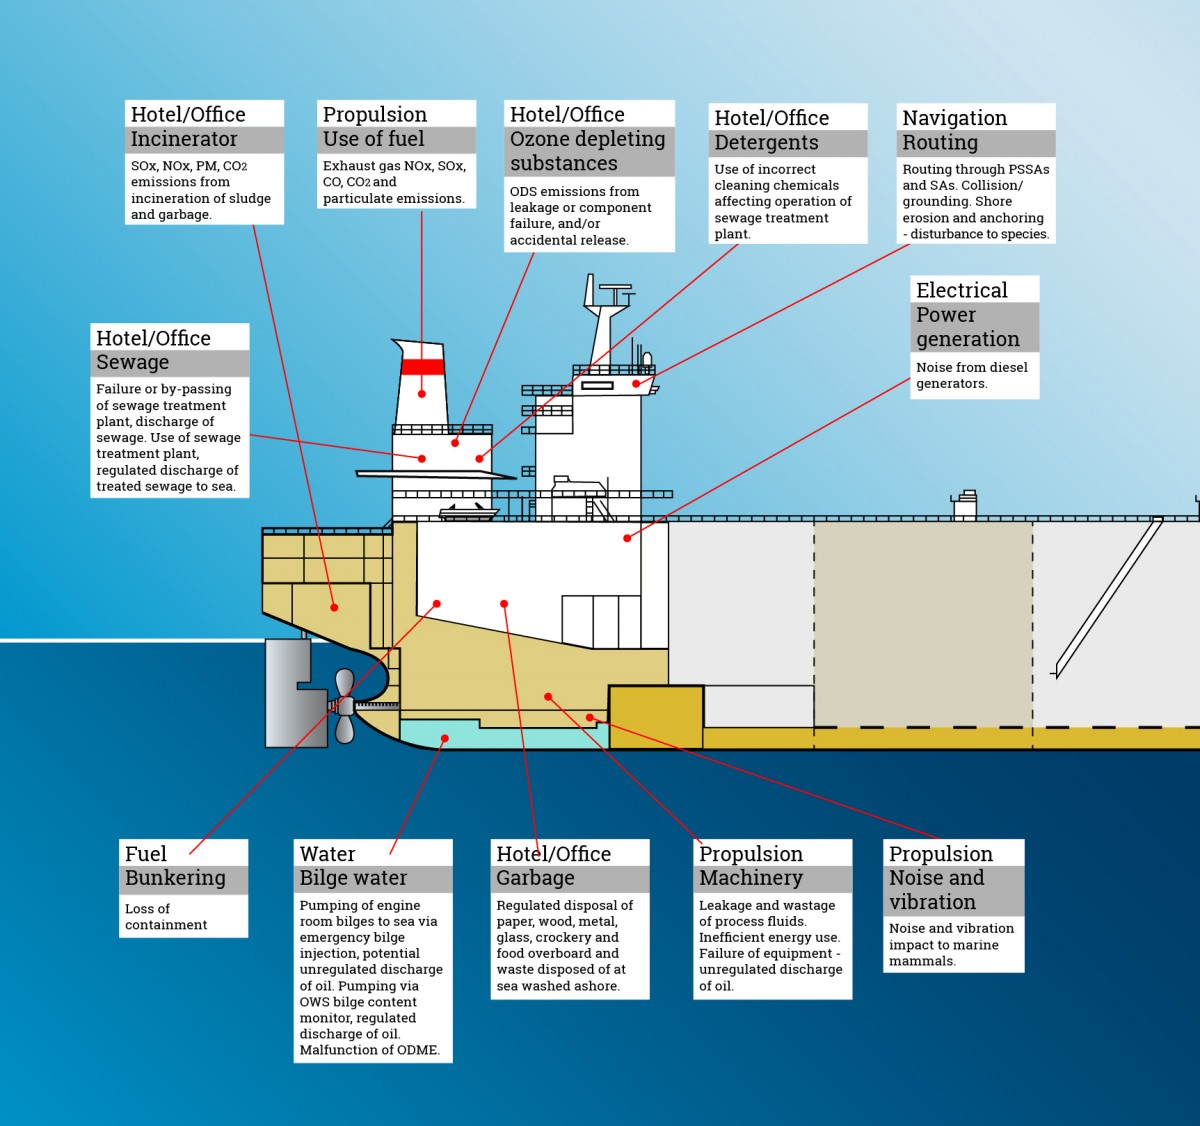 safety management system onboard ship pdf